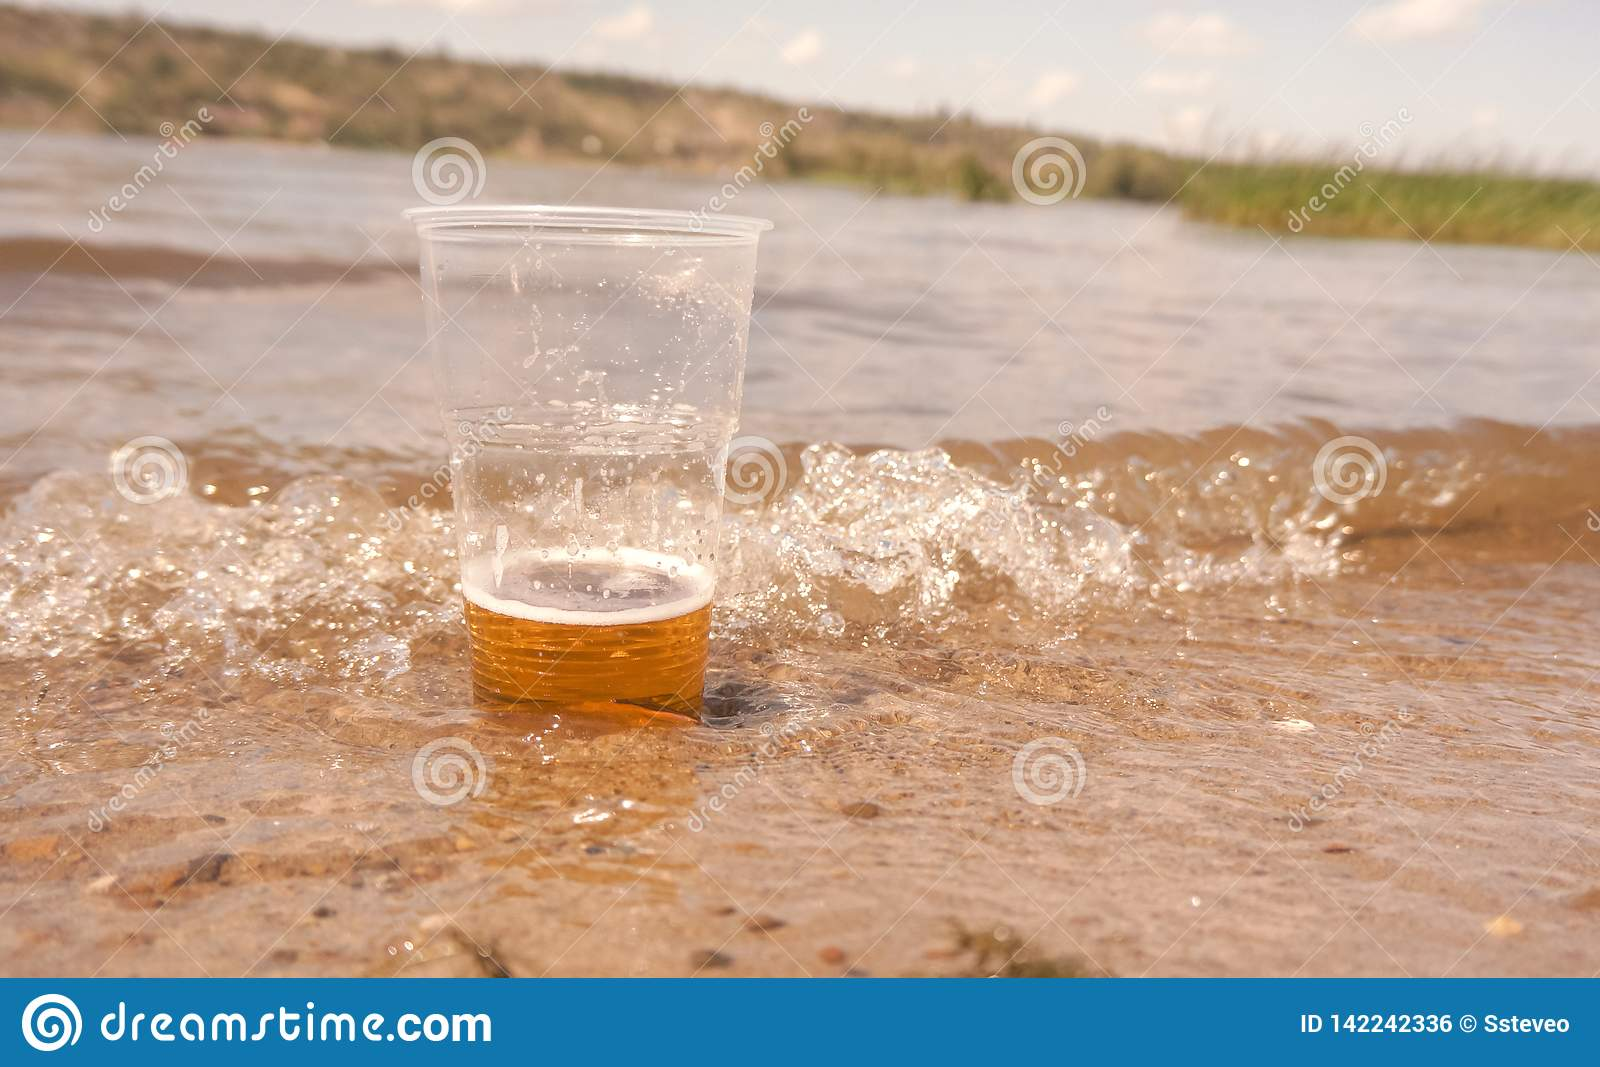 A glass of beer in the water